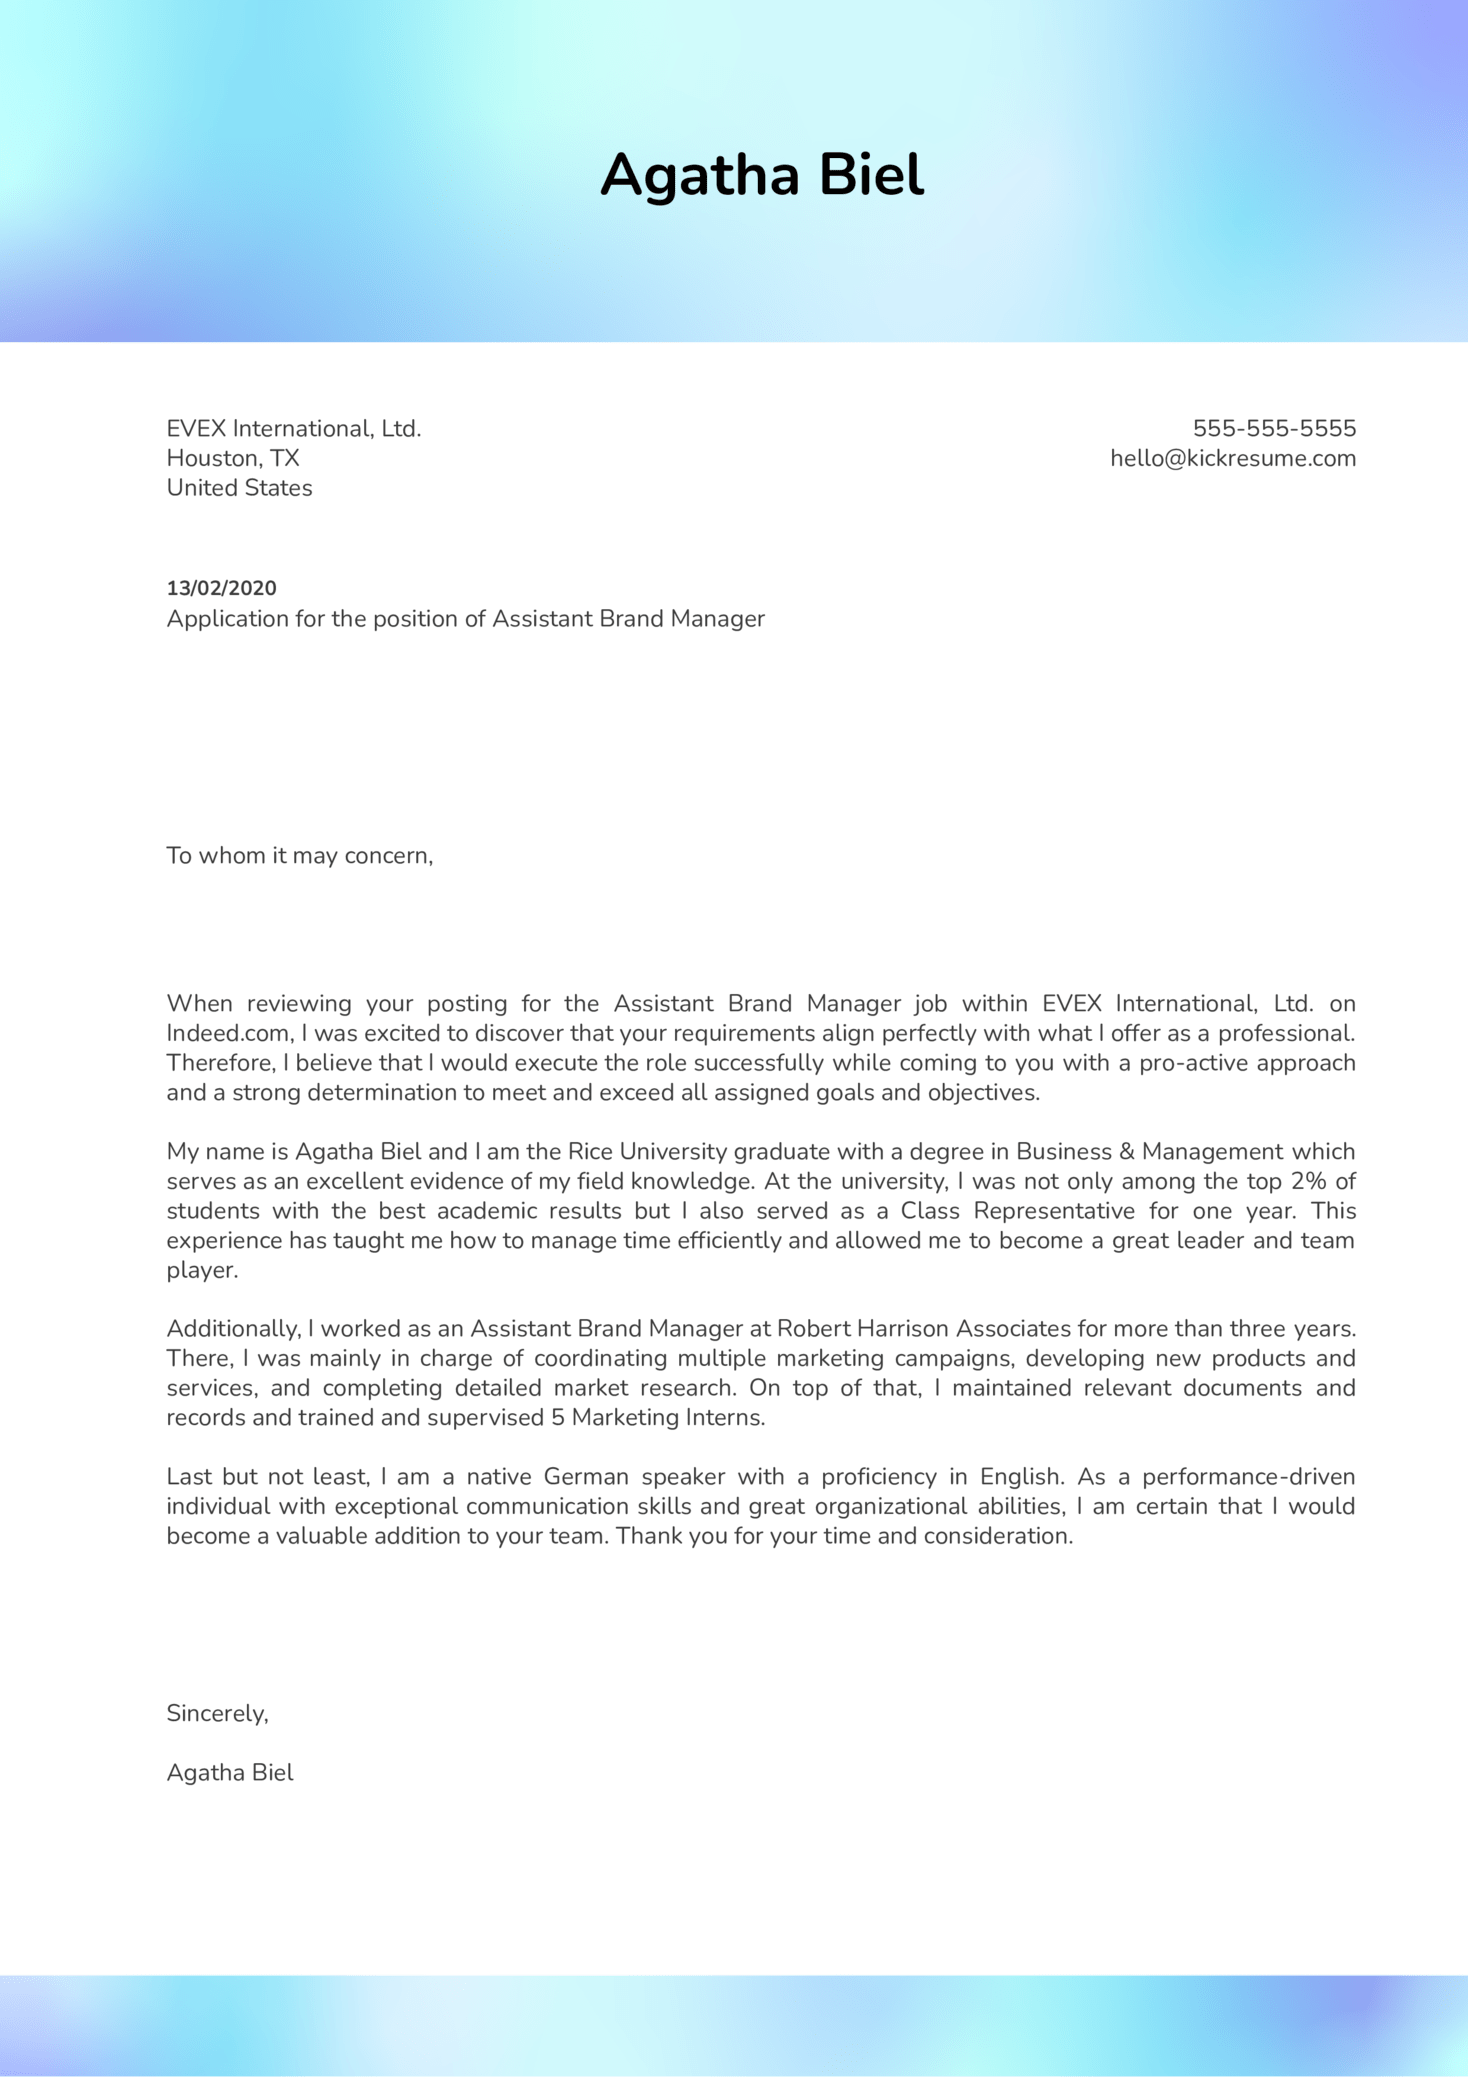 Assistant Brand Manager Cover Letter Sample